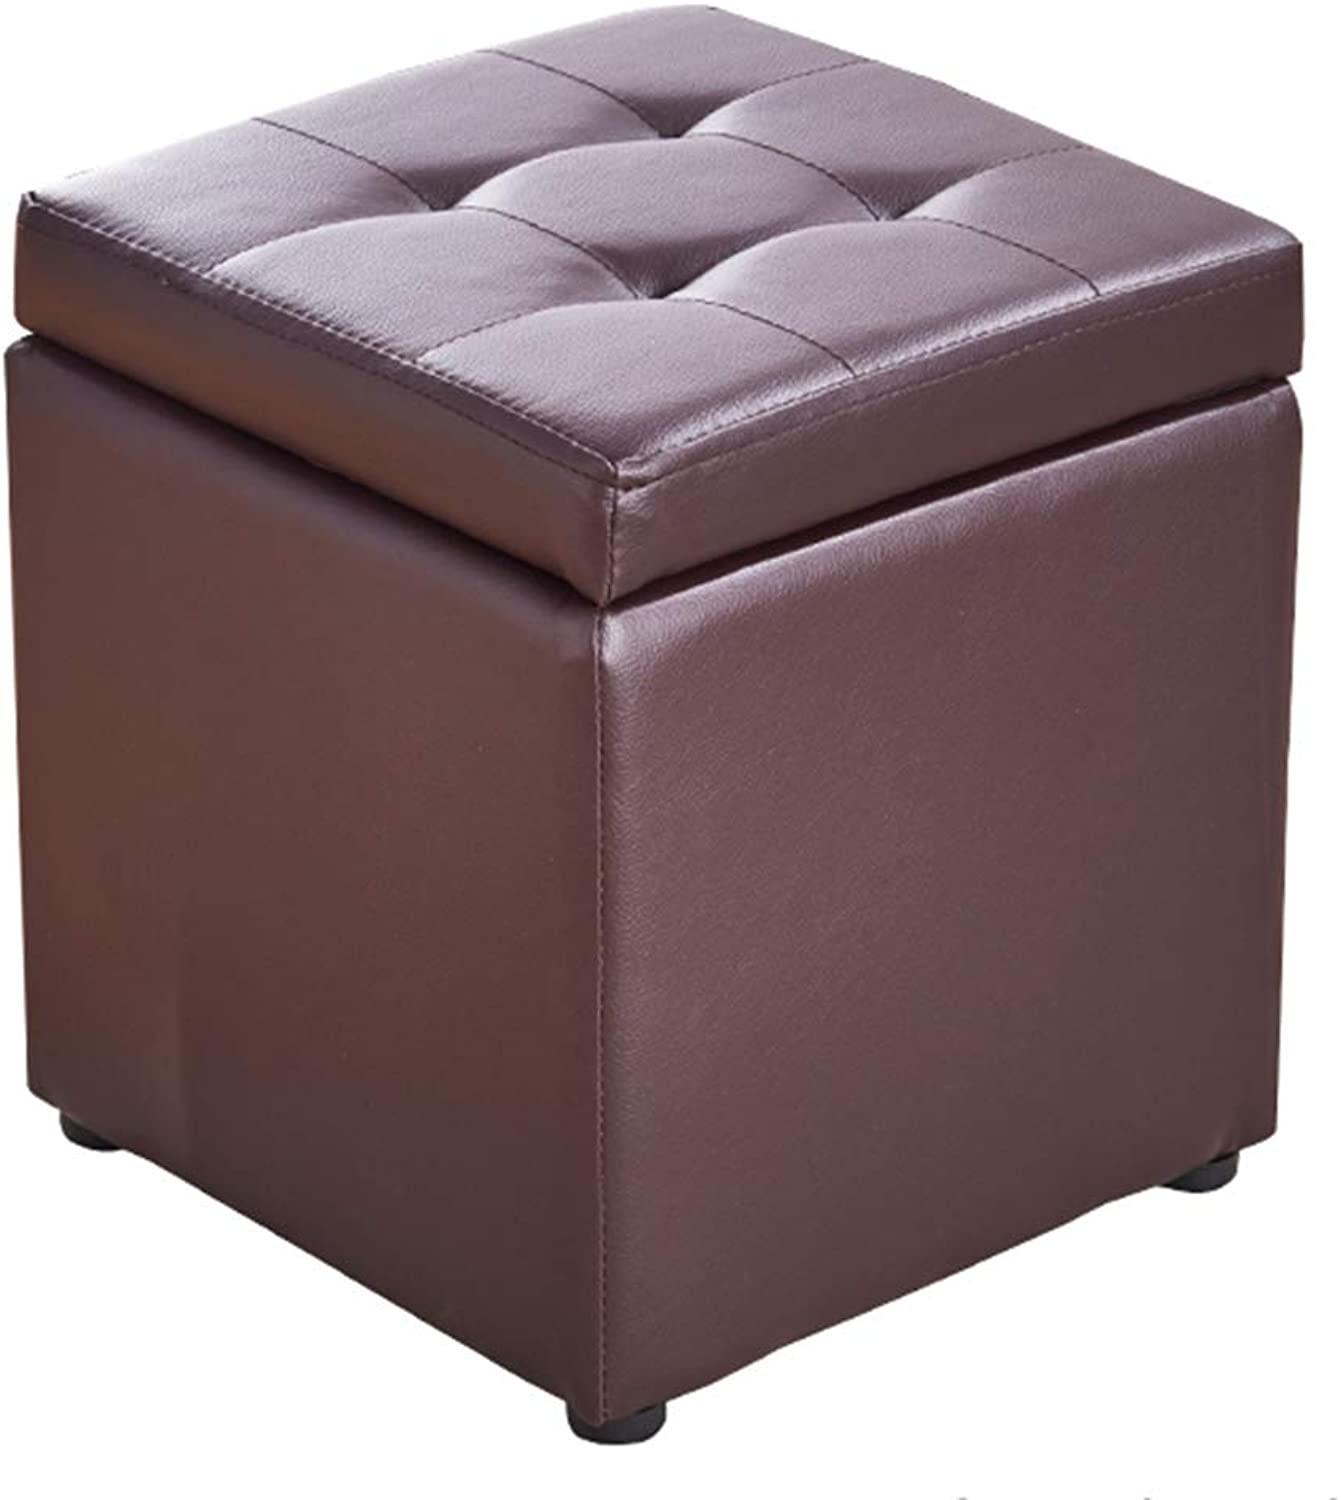 ZXQZ Stool Household Leather Sofa Stool 40x40x40cm Solid Wood Storage Stool shoes Bench Variety of color Optional (color   Brown)